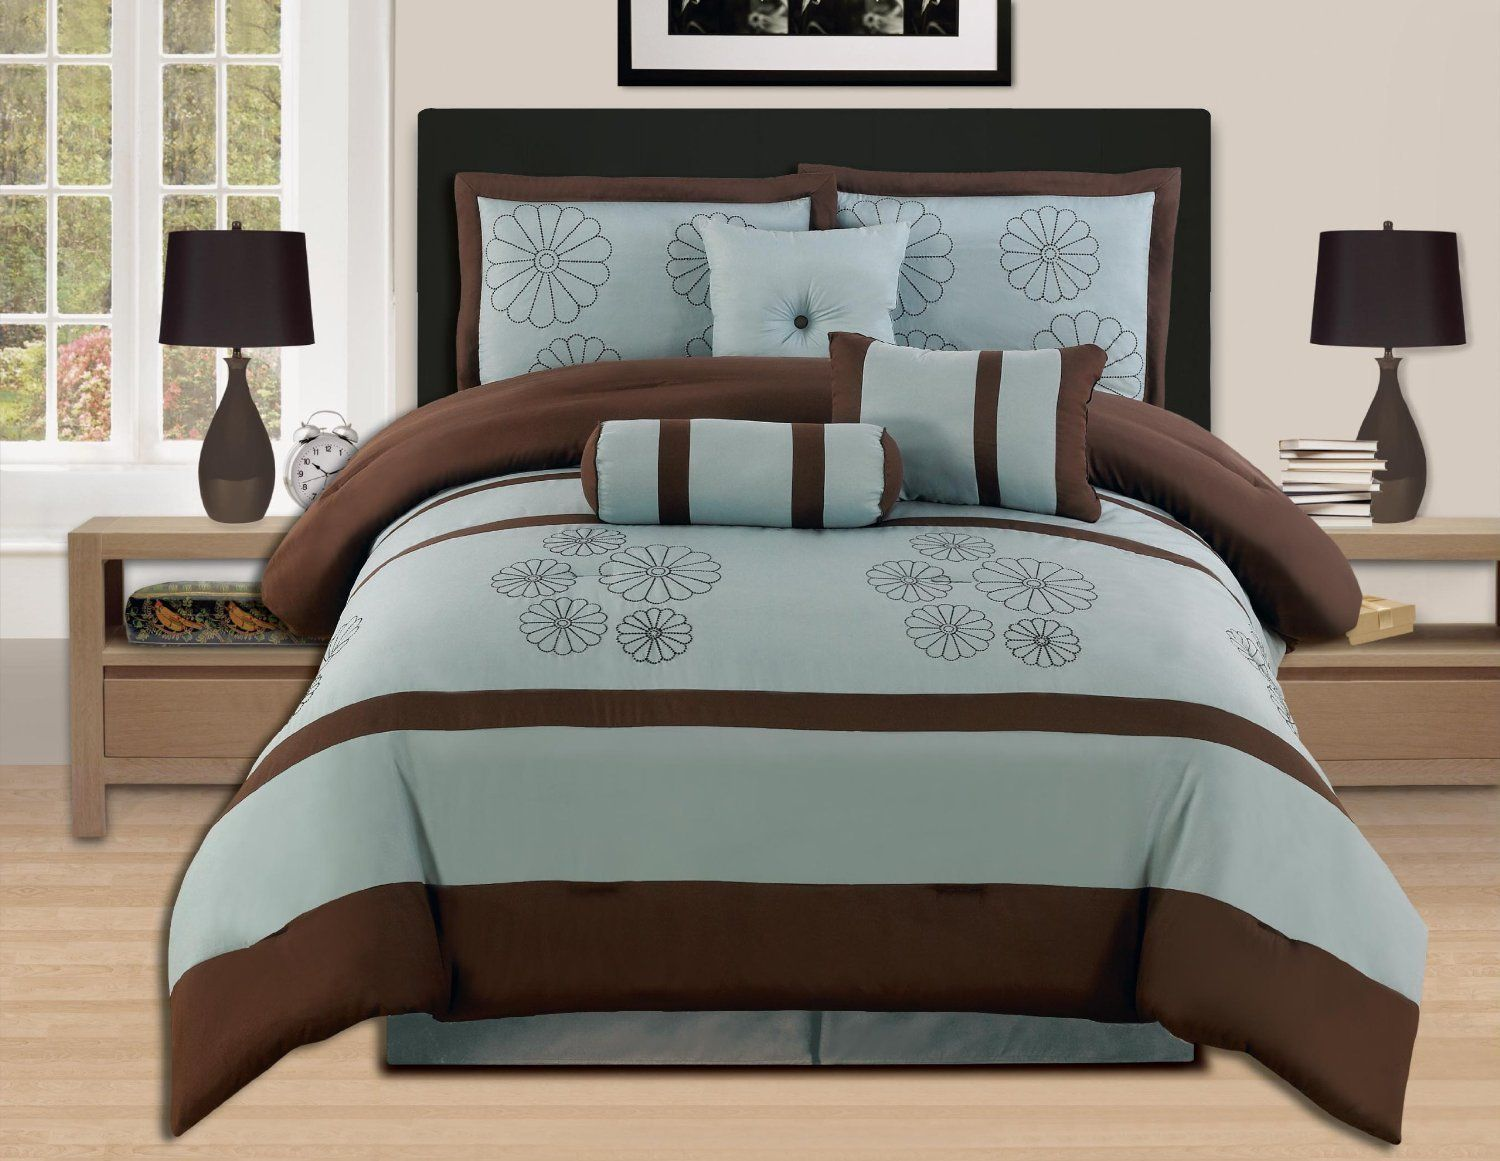 Blue And Brown Bedroom Set 7 pieces luxury embroidery comforter set bed-in-a-bag (oversize